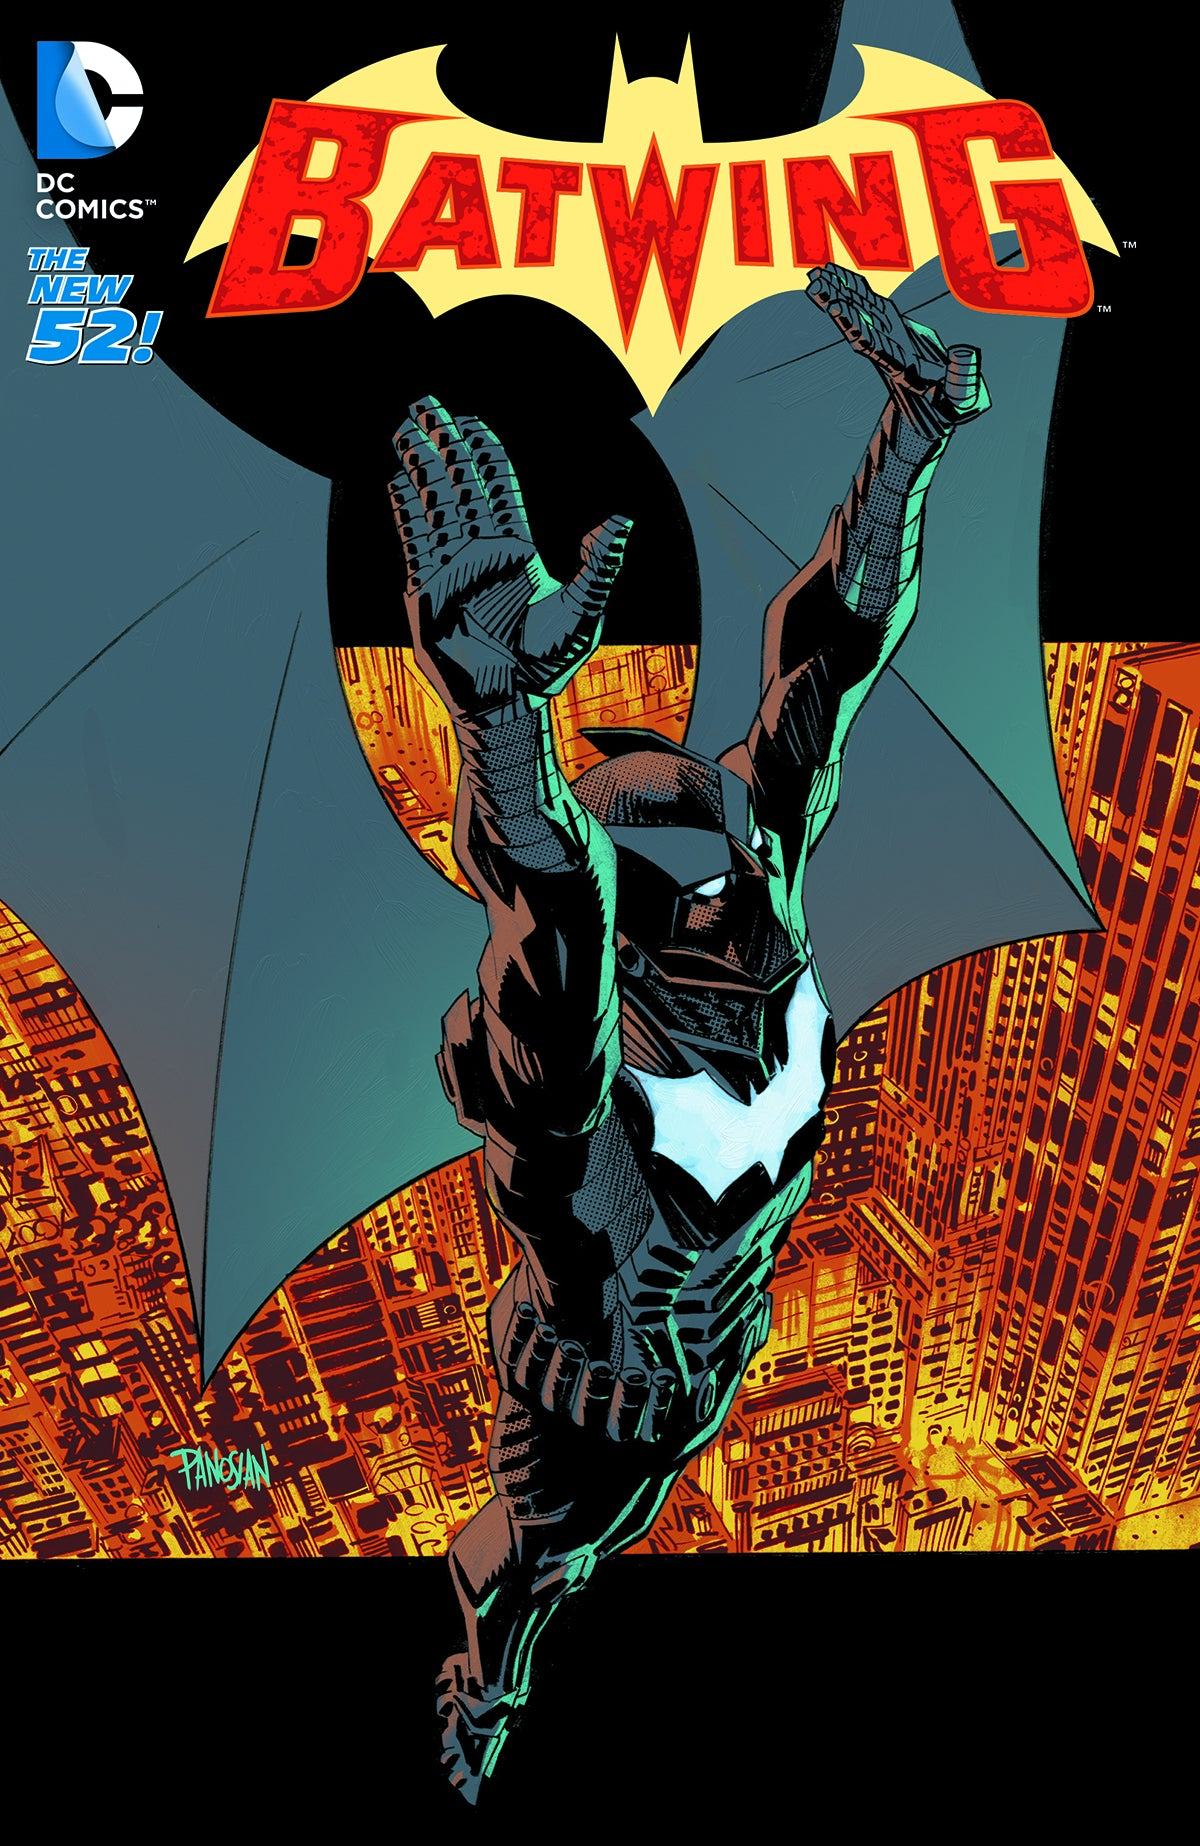 BATWING TP VOL 05 INTO THE DARK (N52) | Game Master's Emporium (The New GME)